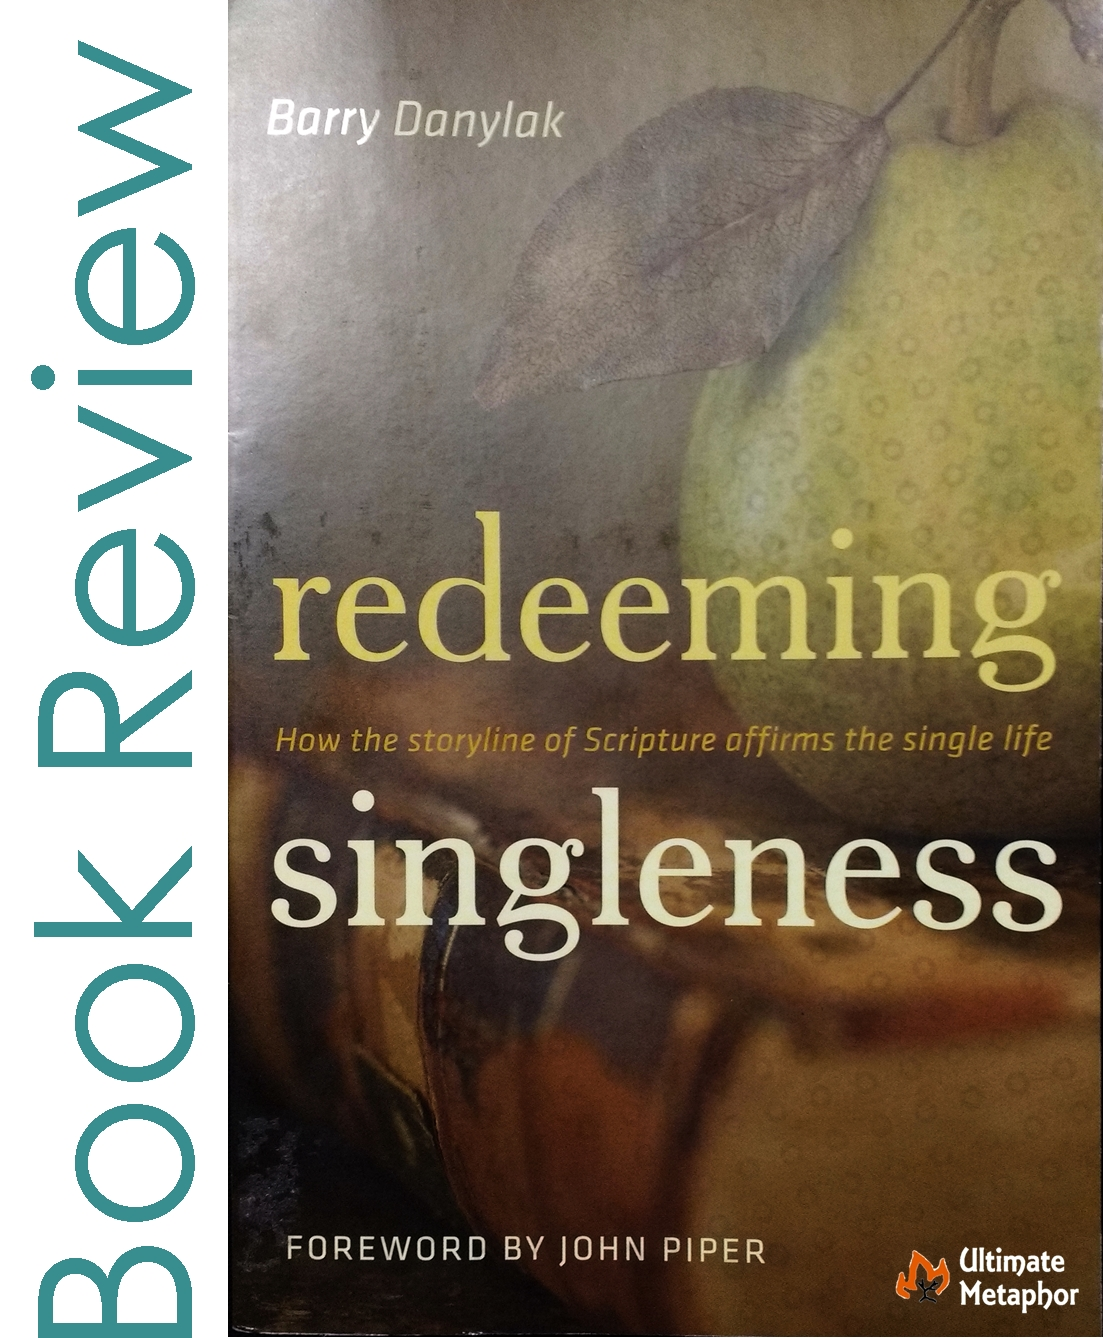 Christian books about singleness and dating